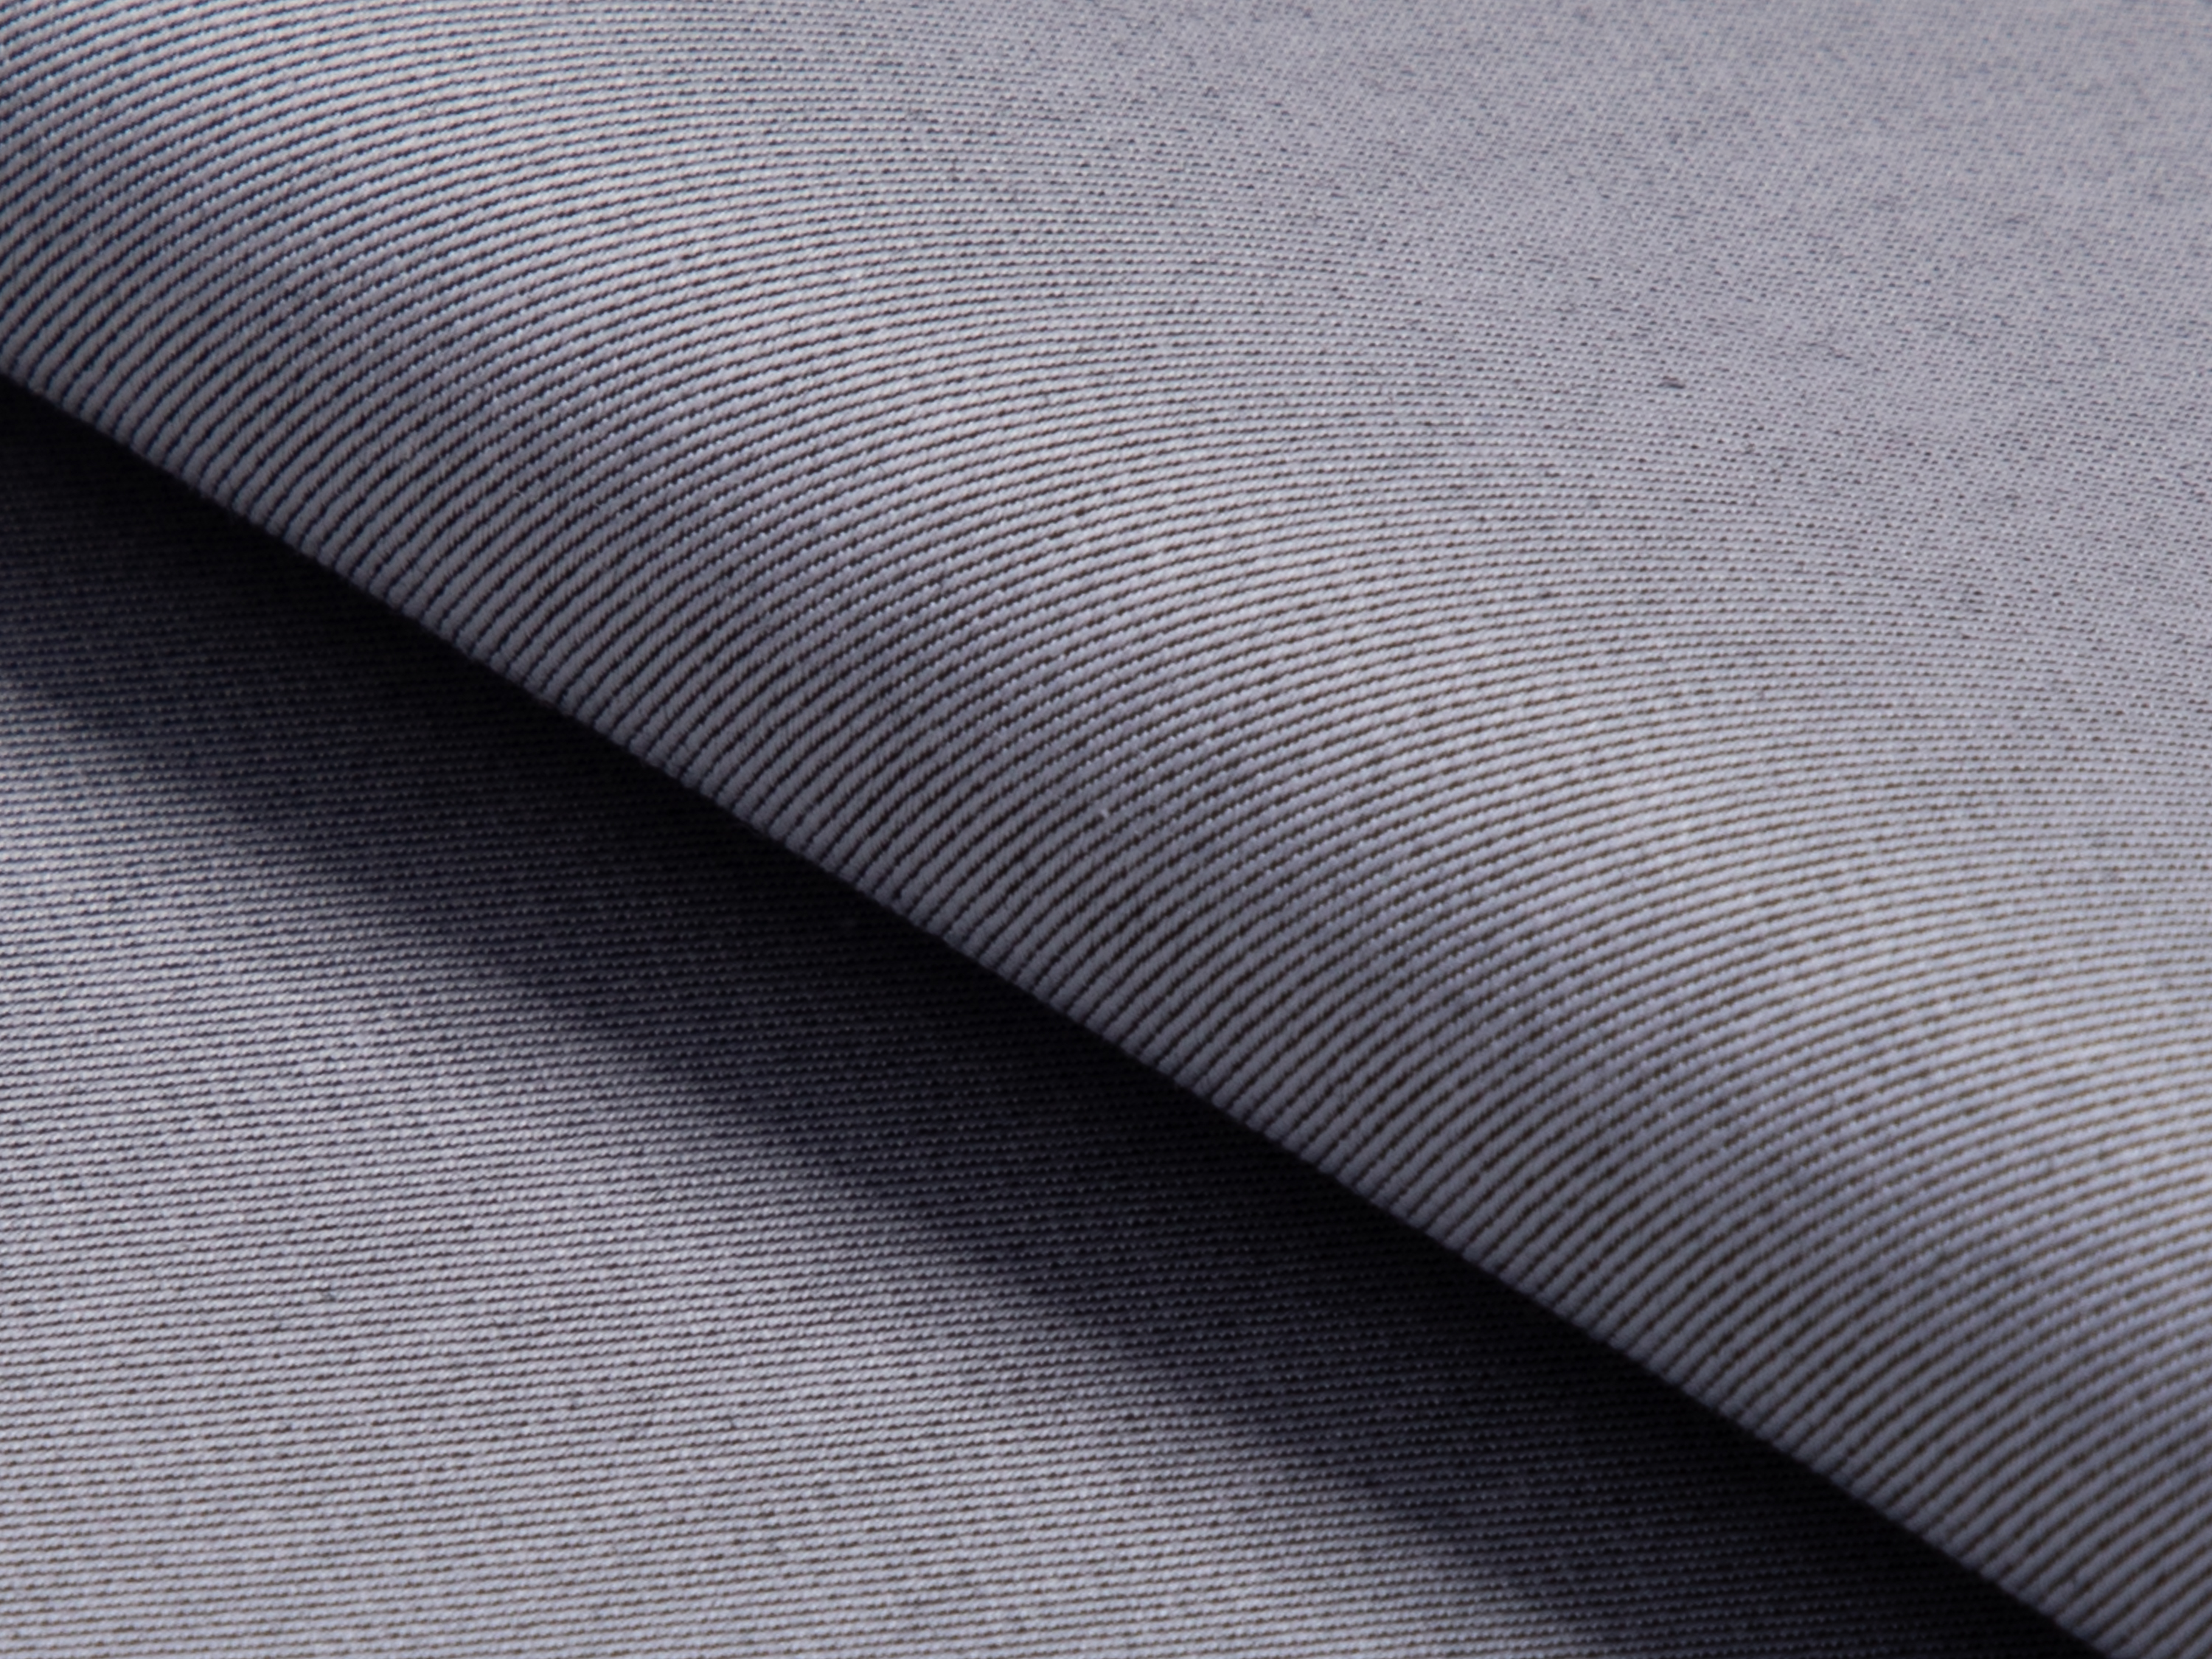 Buy tailor made shirts online - MAYFAIR (NEW) - Twill Grey